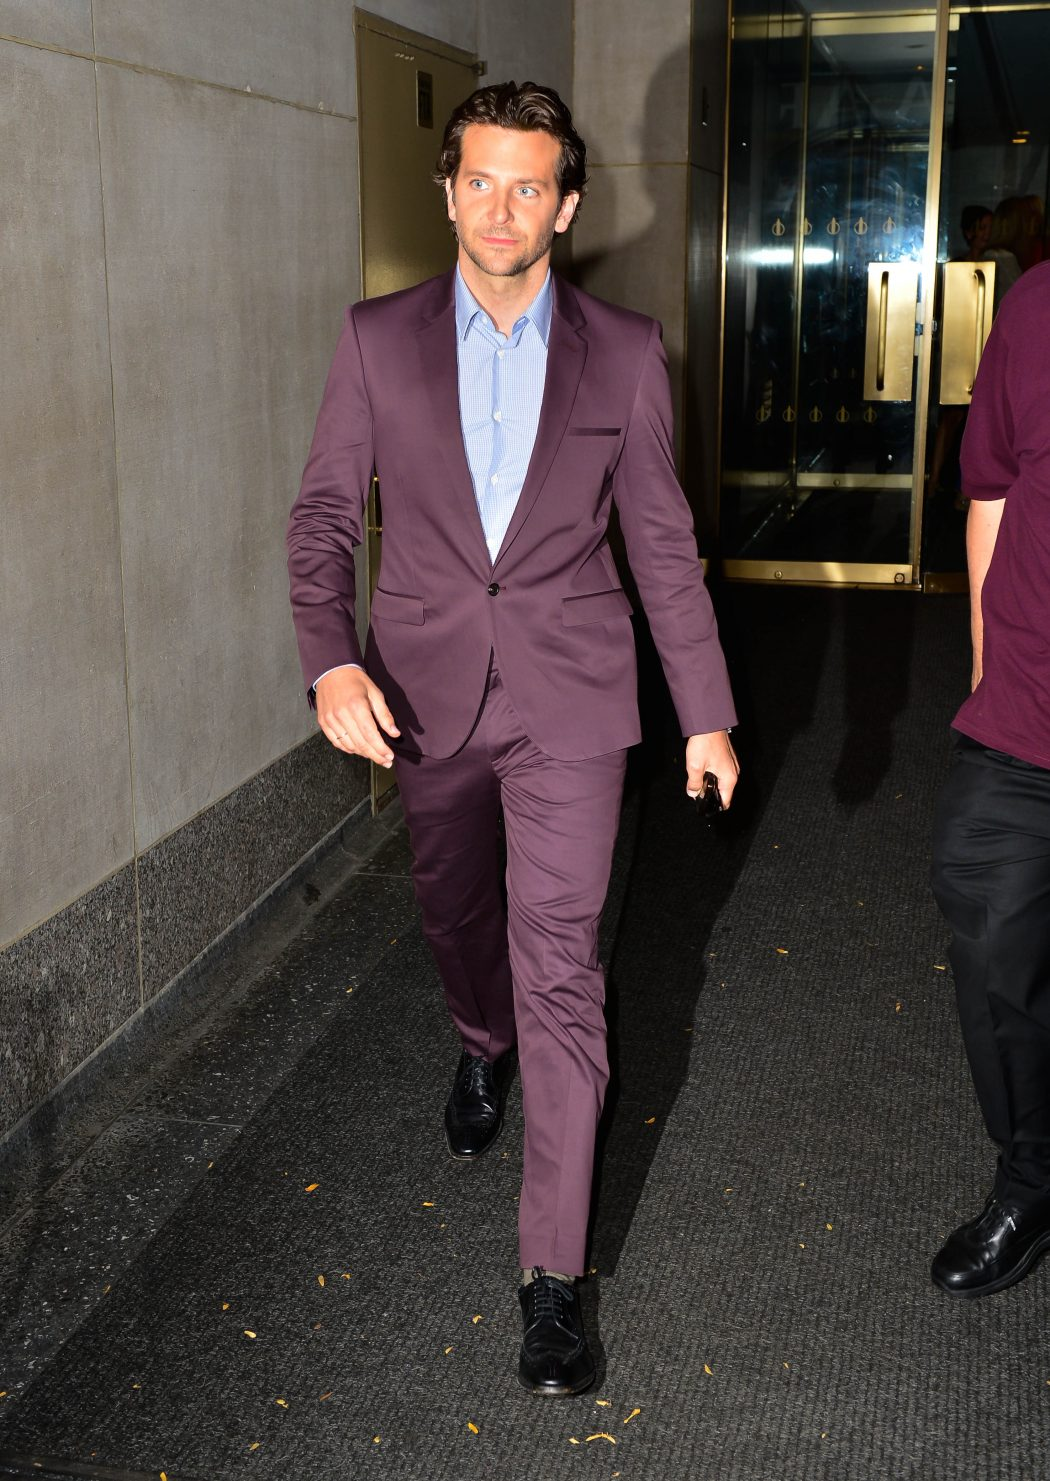 spl429623_002 15 Male Celebrities Fashion Trends for Summer 2020